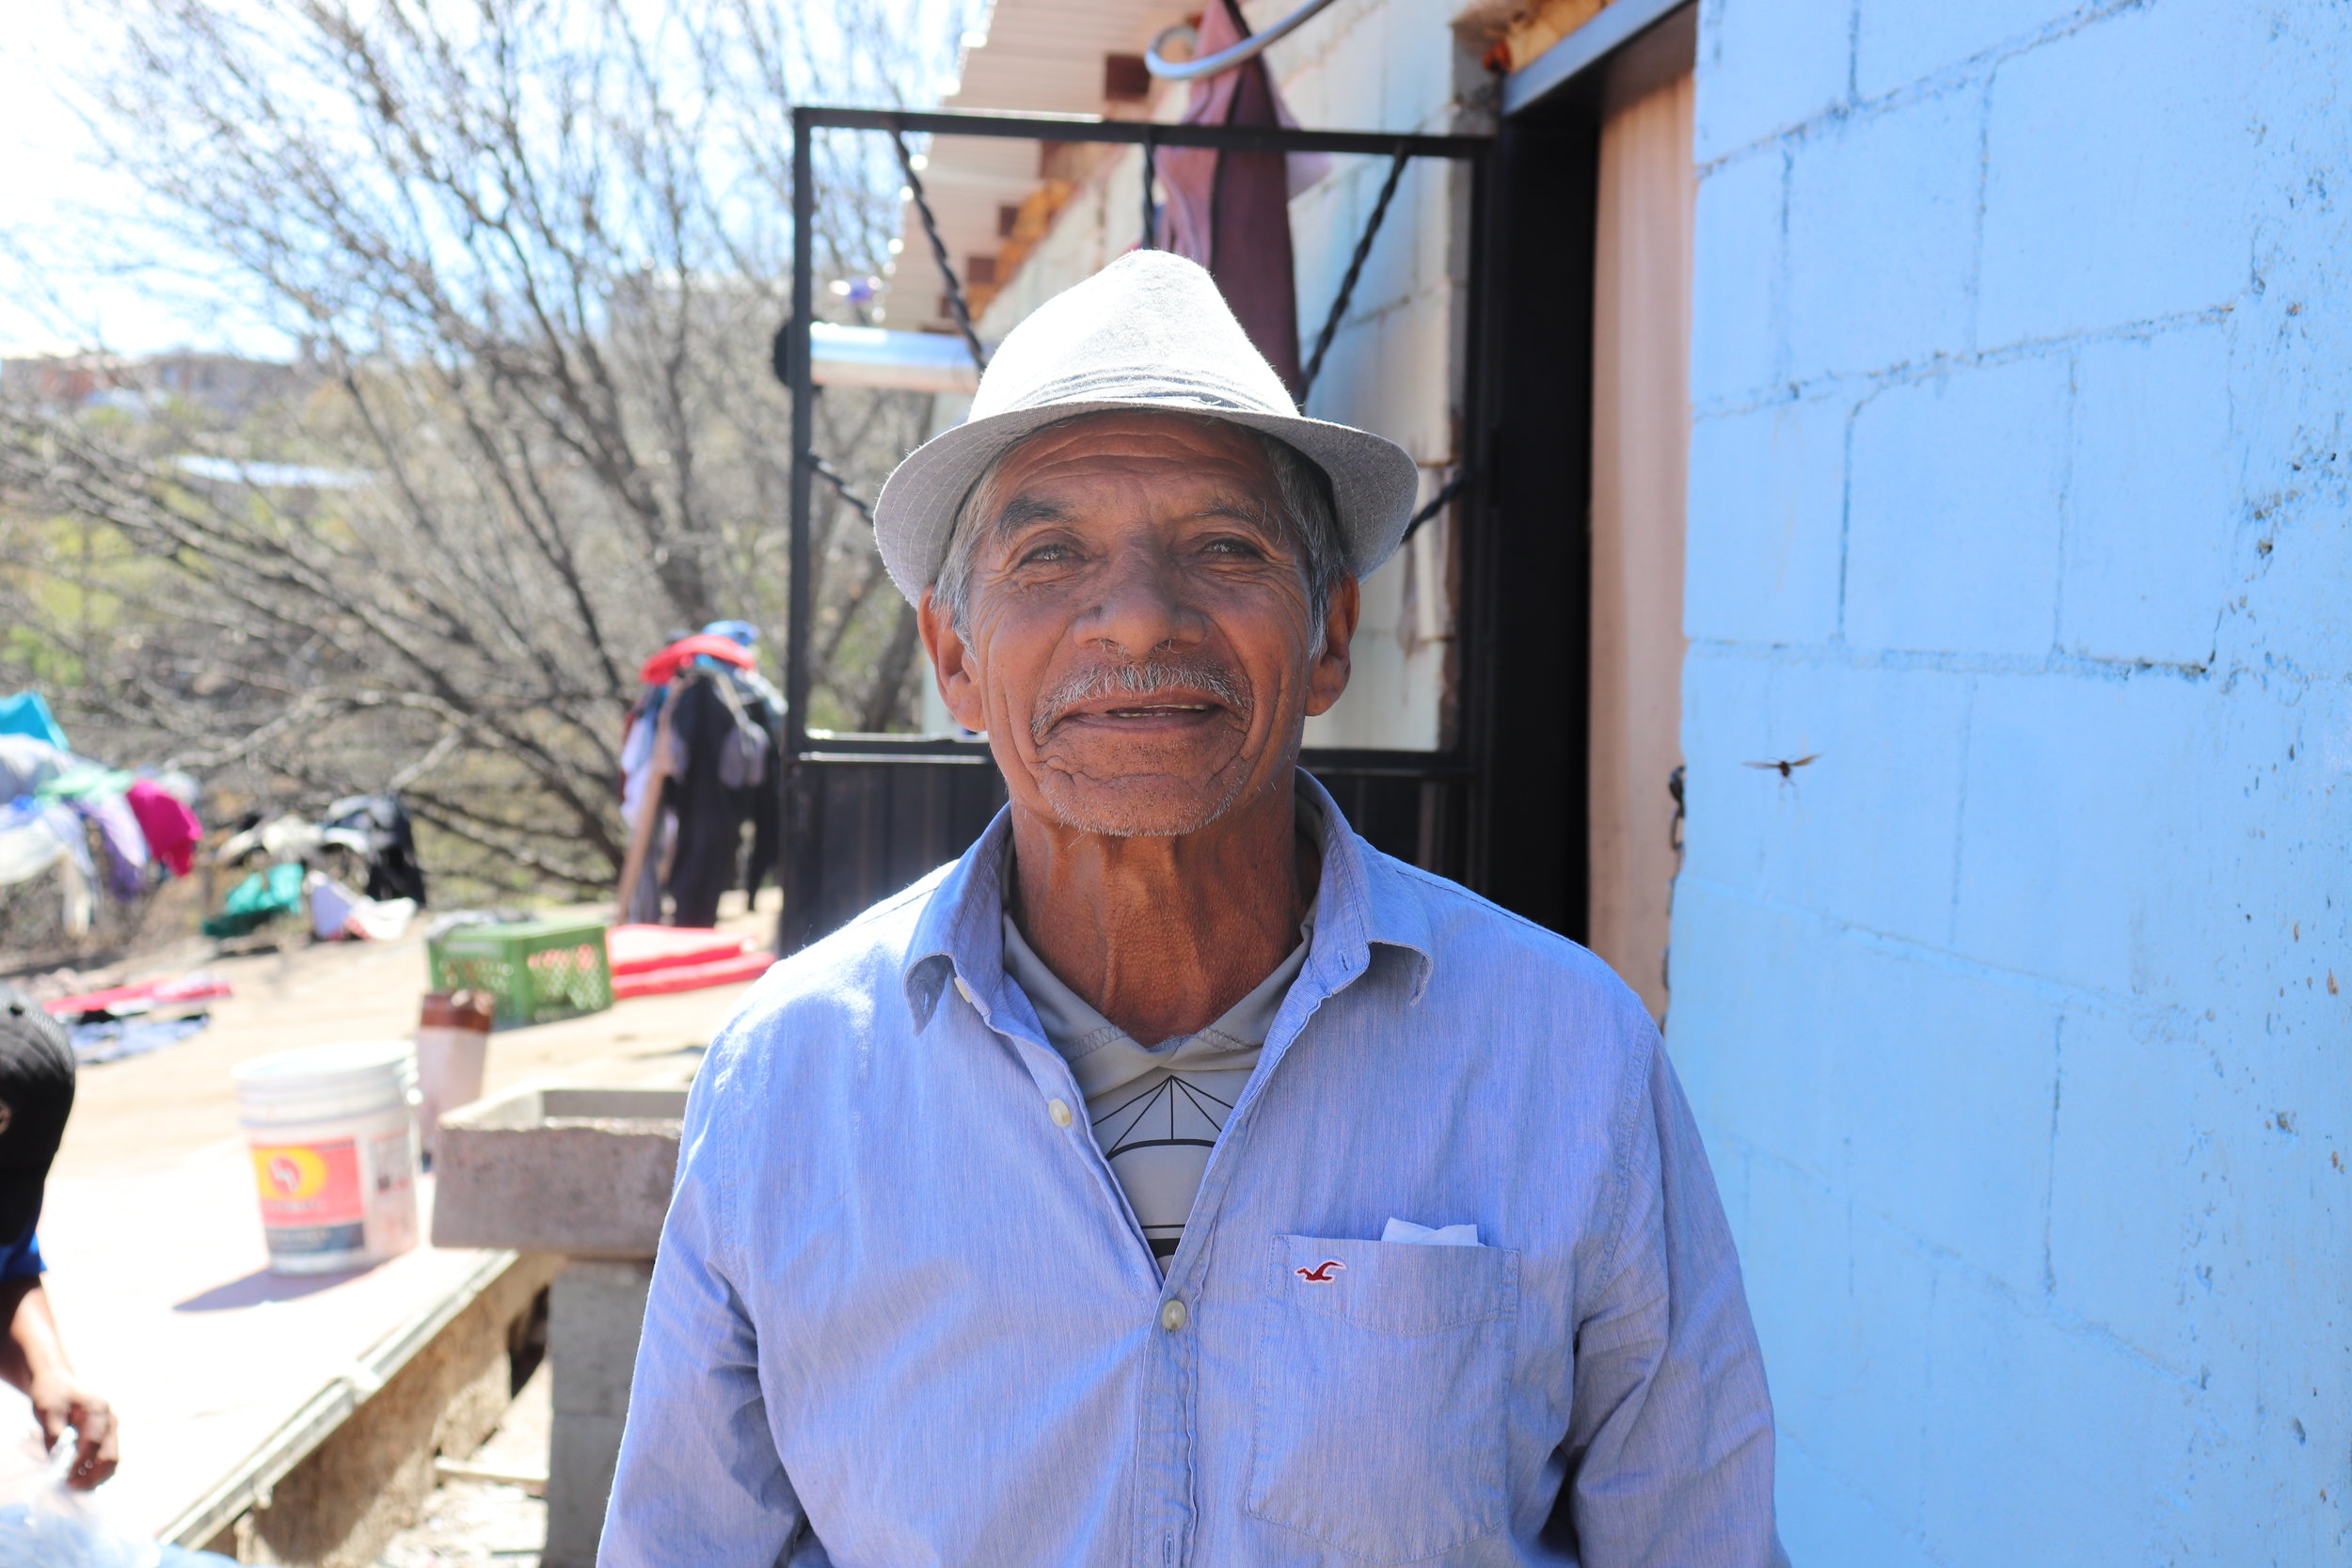 This is the oldest migrant at the shelter, he is 85 years old and traveling with his daughter. After my visit I found out that he will not be allowed entry into the U.S. because of his age. He has decided to go back to Guerrero, Mexico to live out his days. He does not fear the cartel since he is at such an old age.